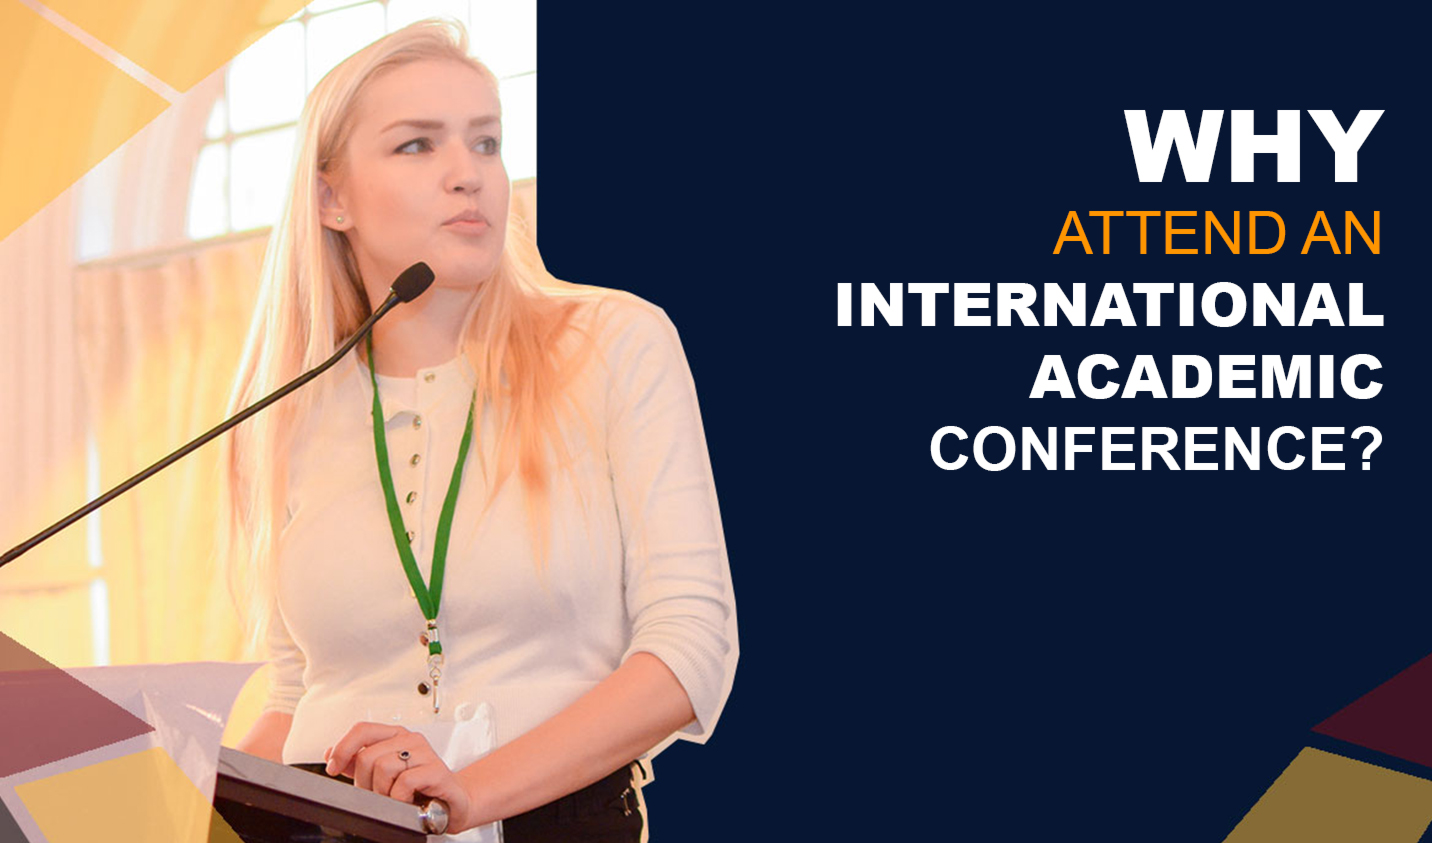 Why attend an international academic conference